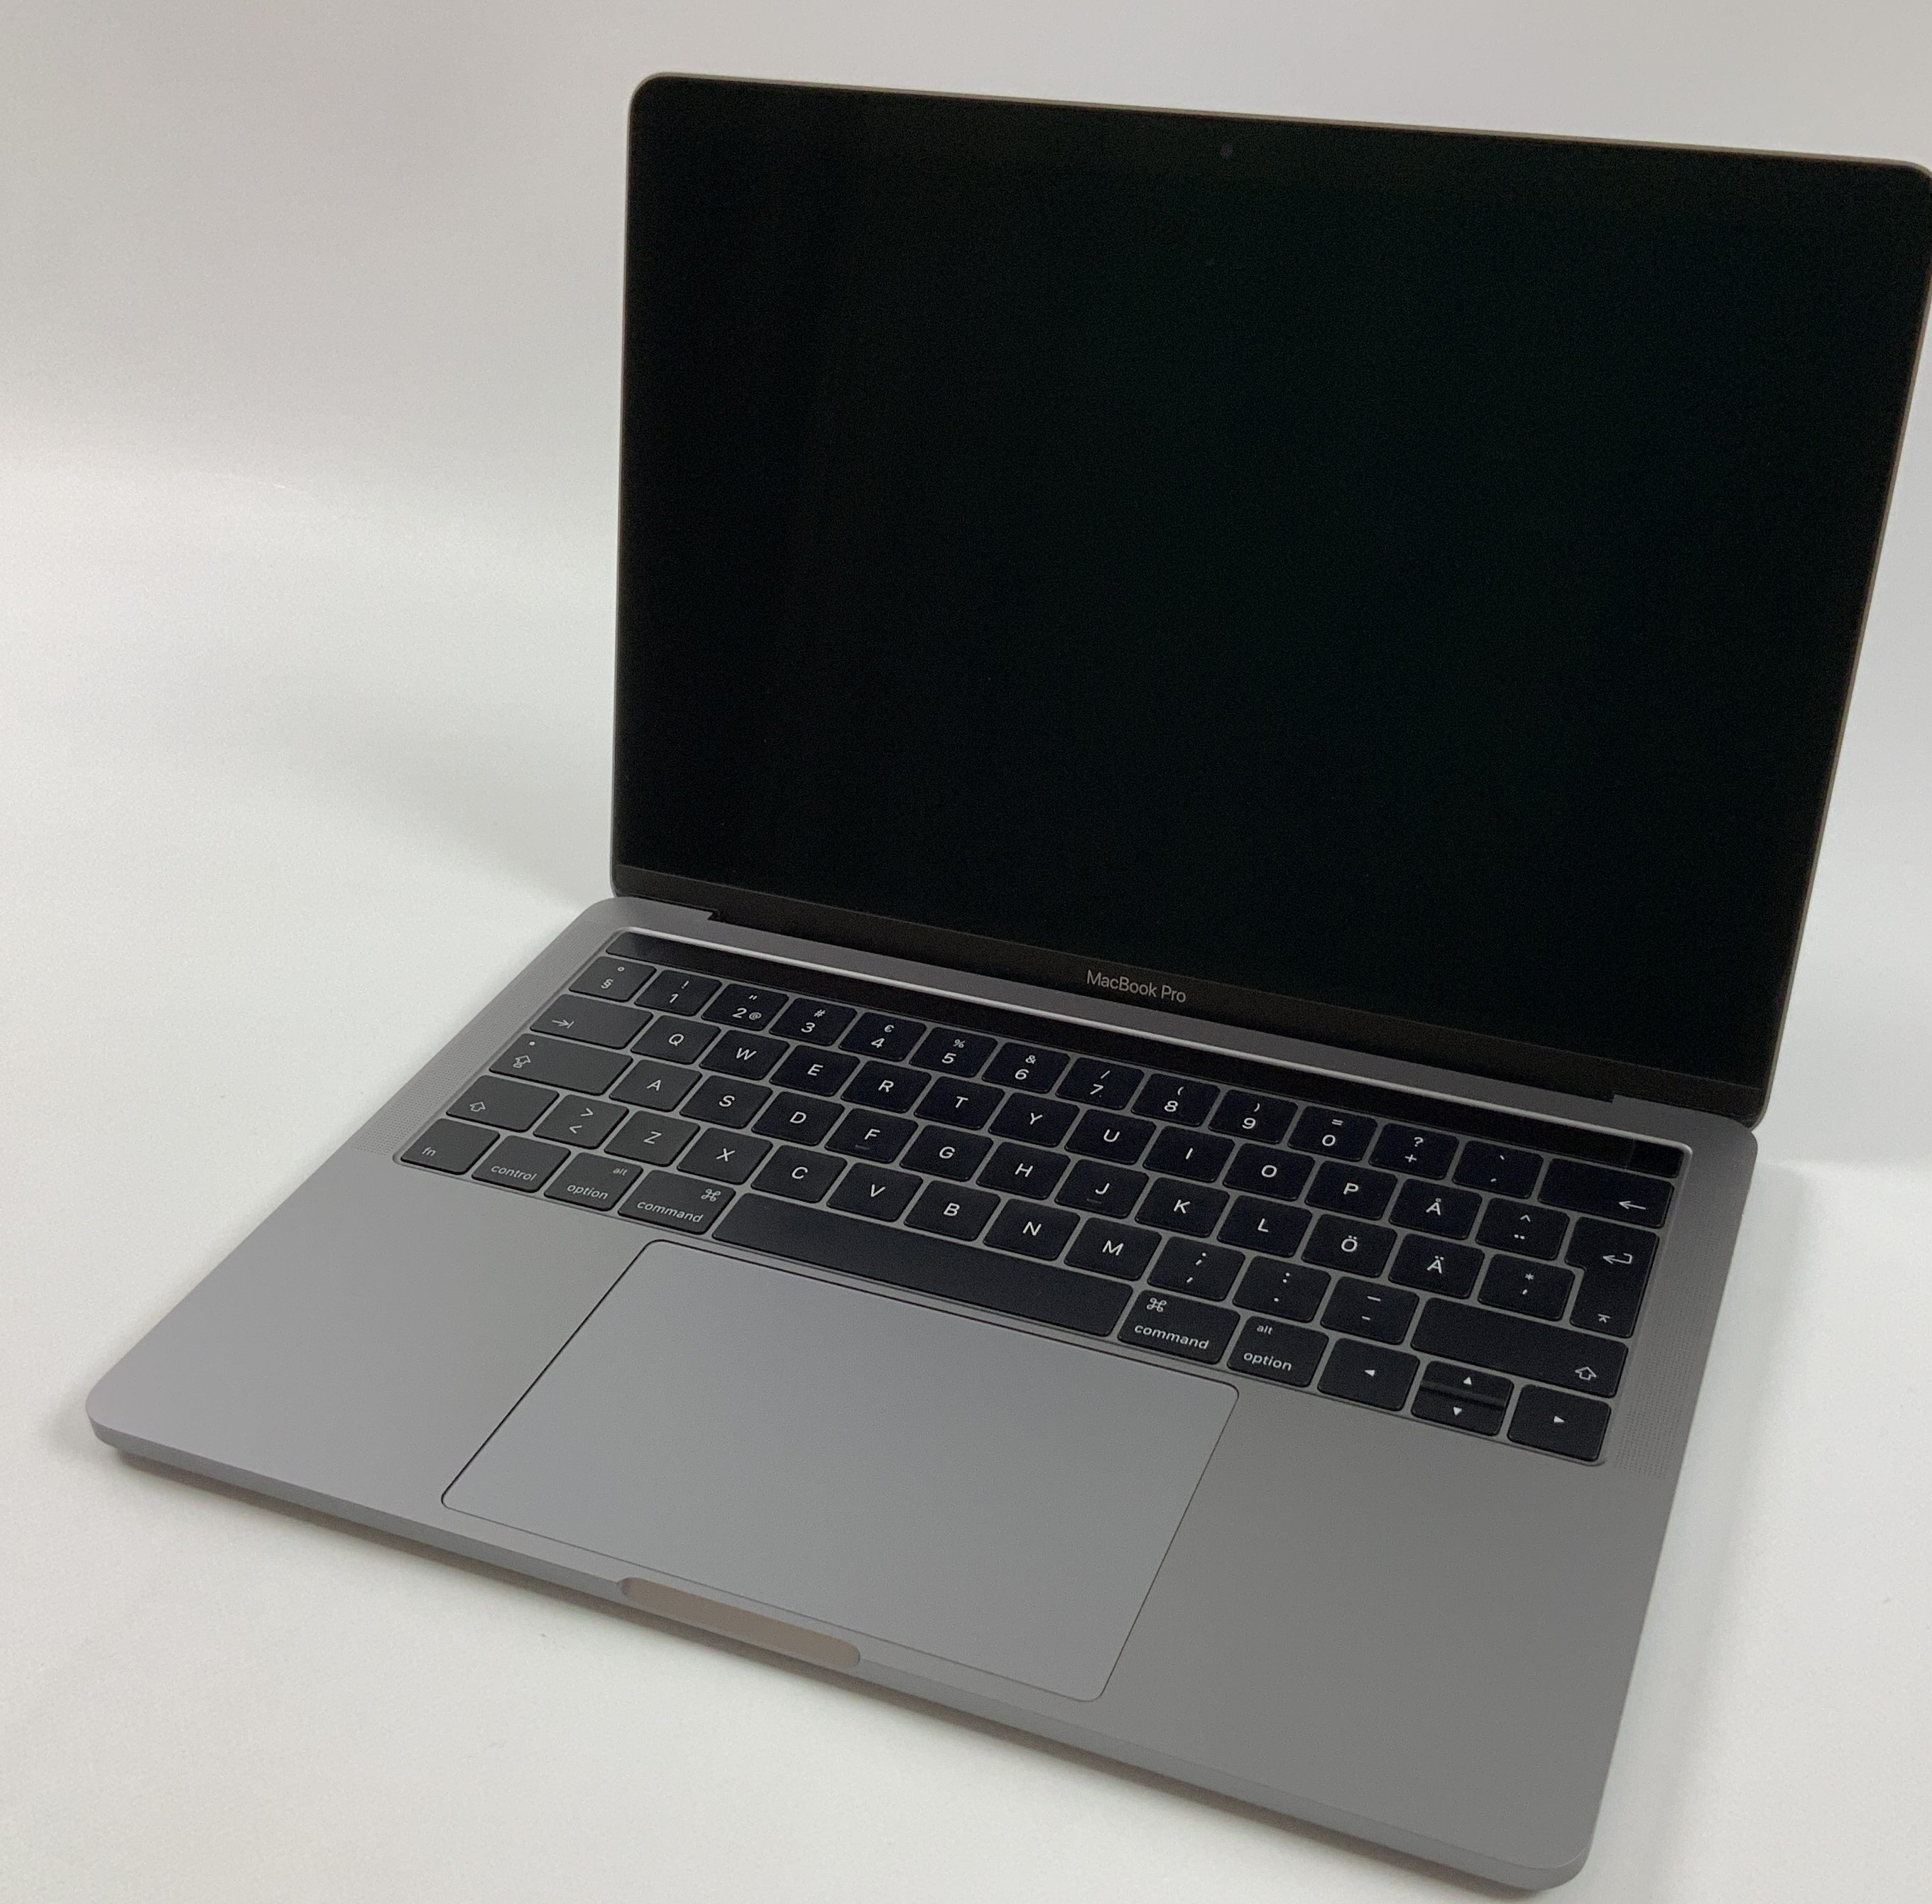 "MacBook Pro 13"" 4TBT Late 2016 (Intel Core i5 2.9 GHz 8 GB RAM 256 GB SSD), Space Gray, Intel Core i5 2.9 GHz, 8 GB RAM, 256 GB SSD, obraz 1"